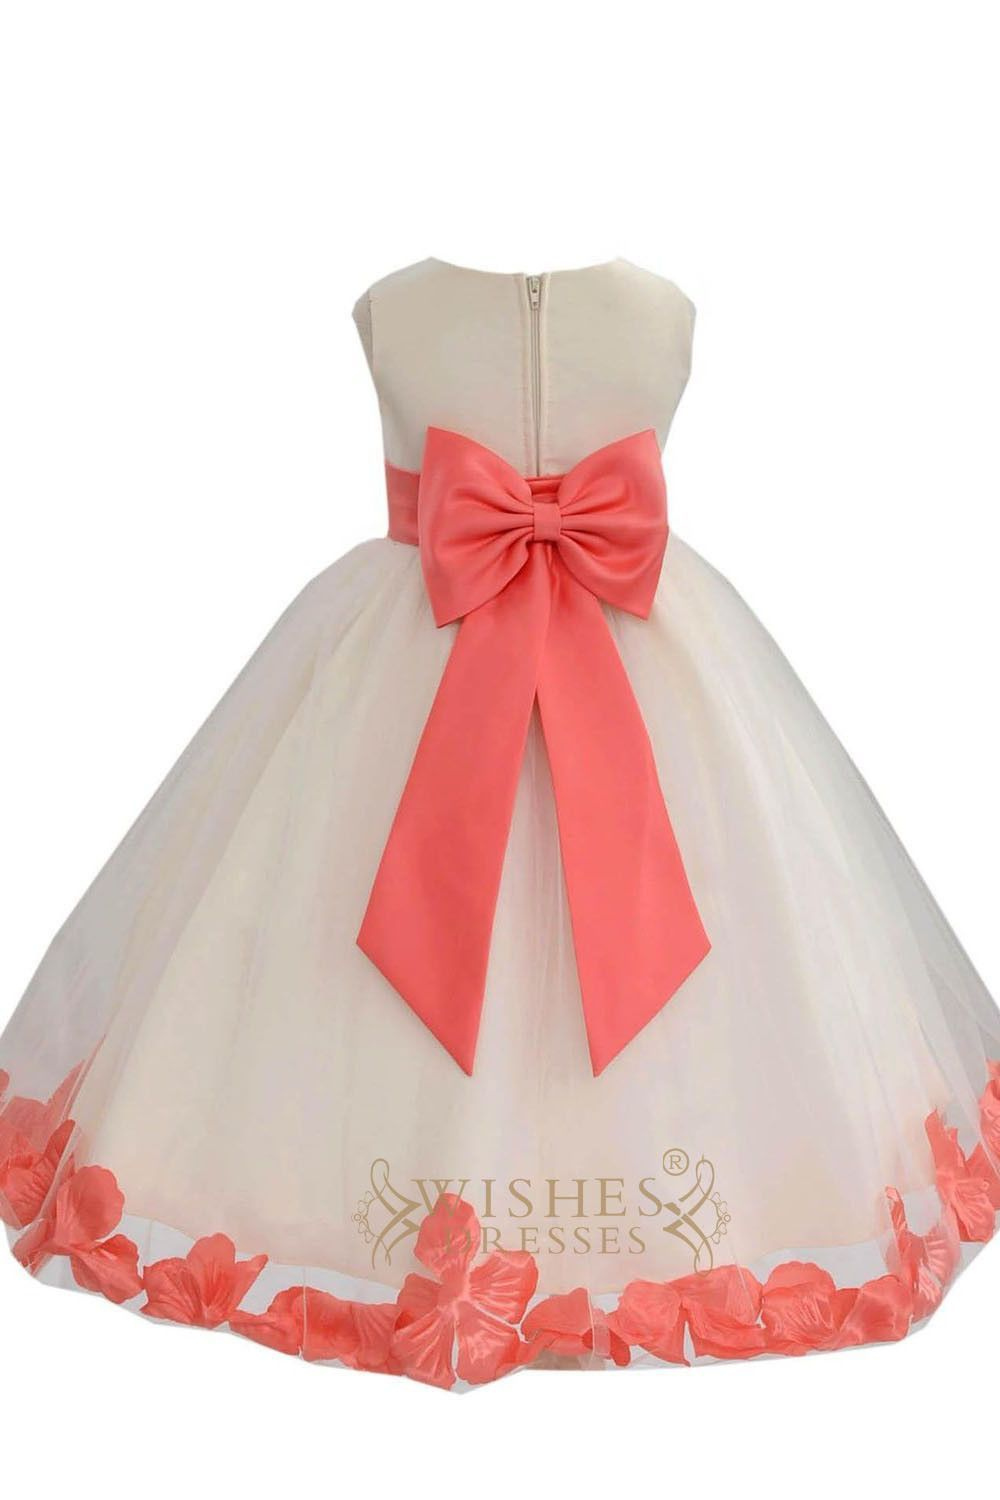 642c91d47d8 White satin and organza skirt with different color sash